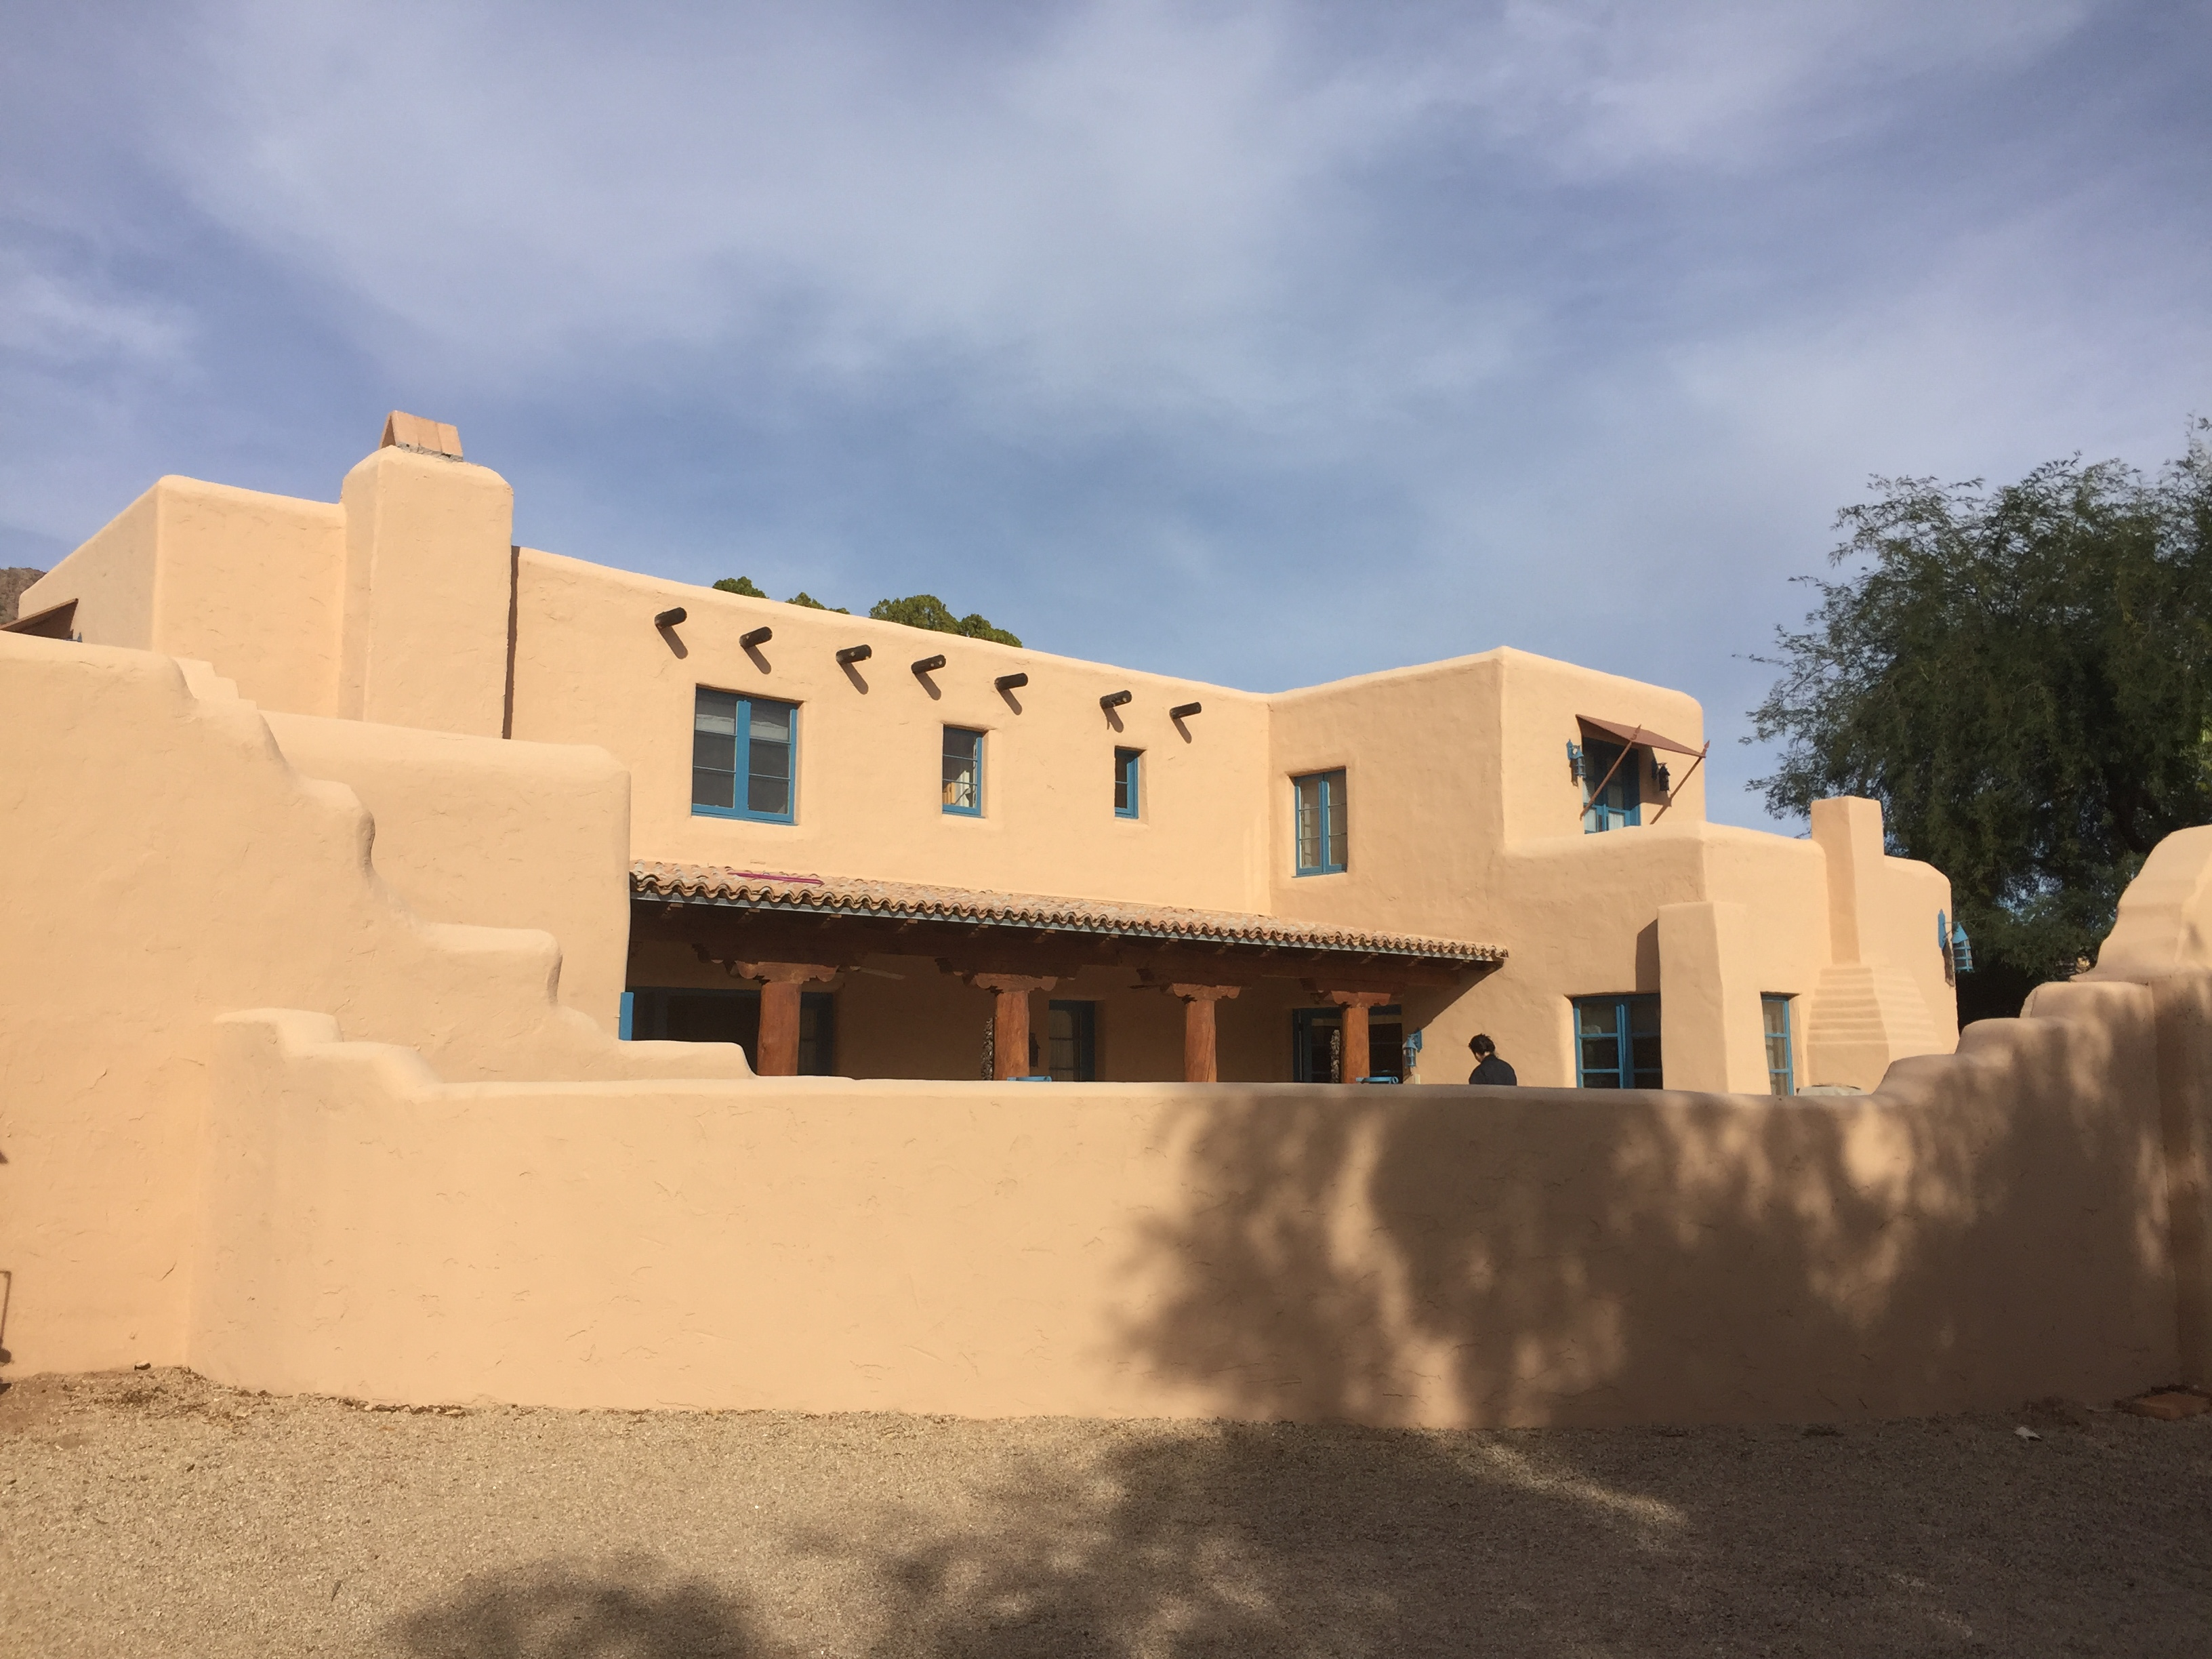 Adobe pueblo revival downtown historic phoenix real estate for Adobe home construction